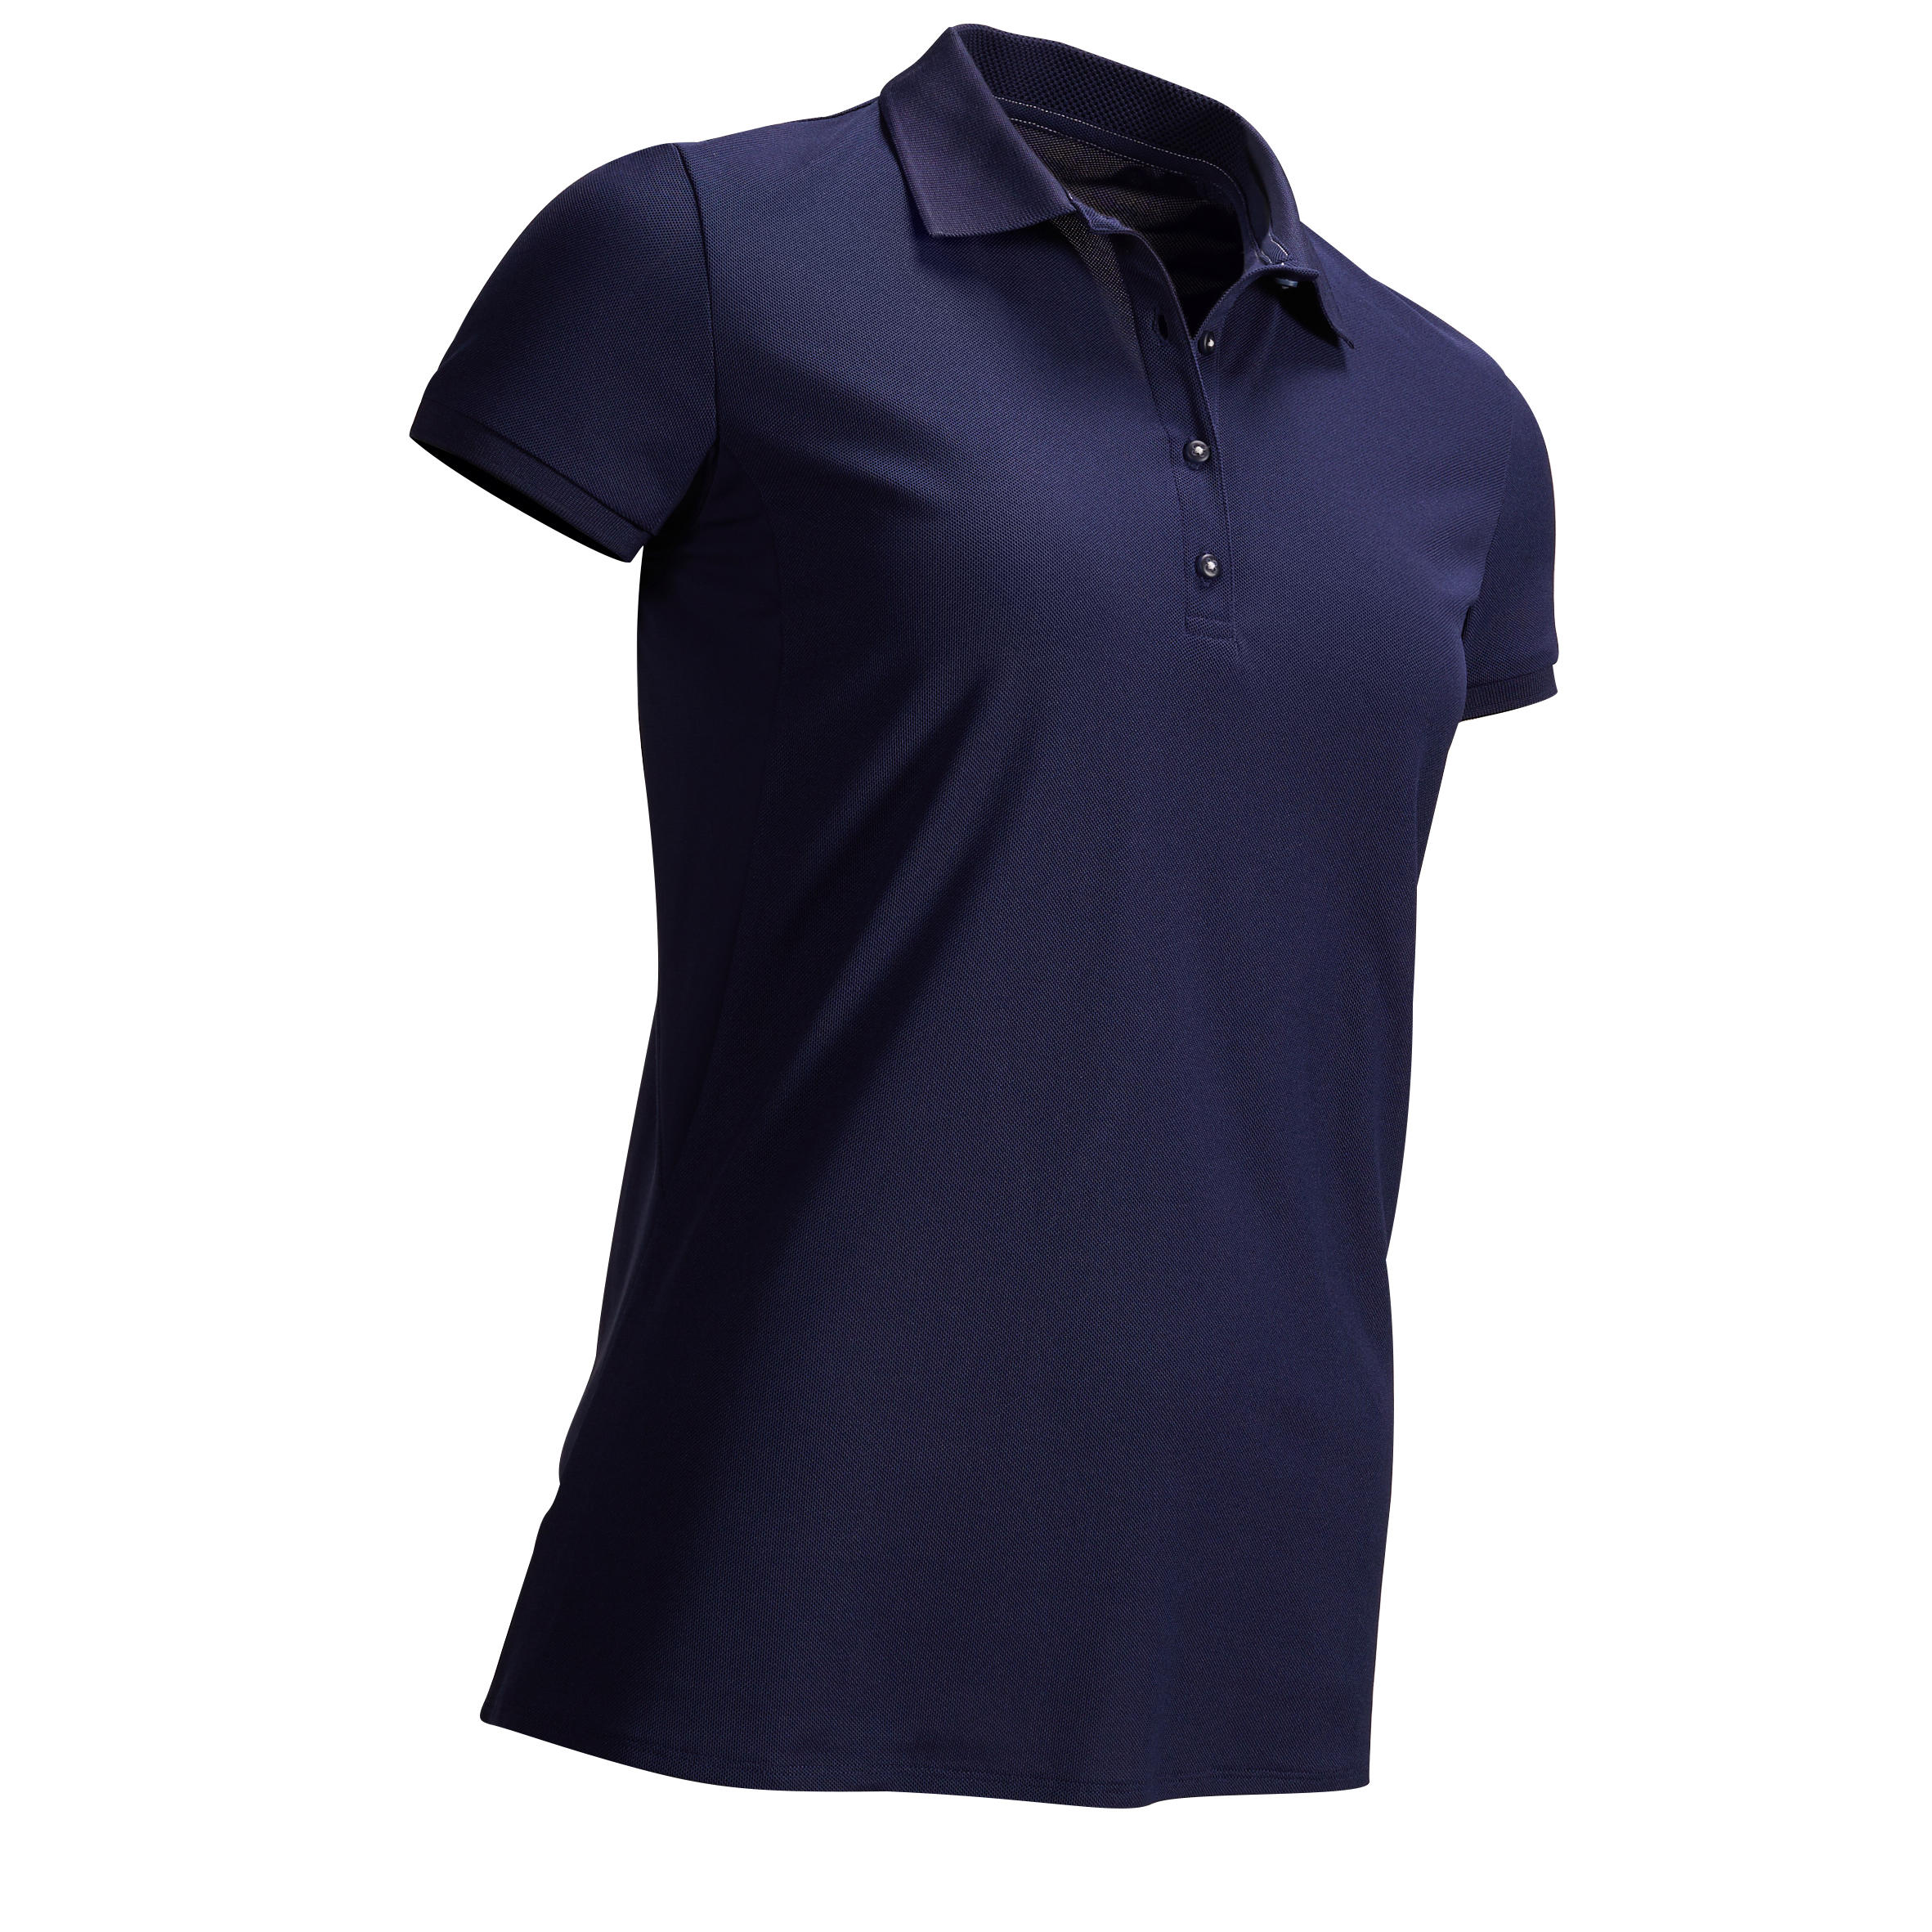 NAVY BLUE WOMEN'S...